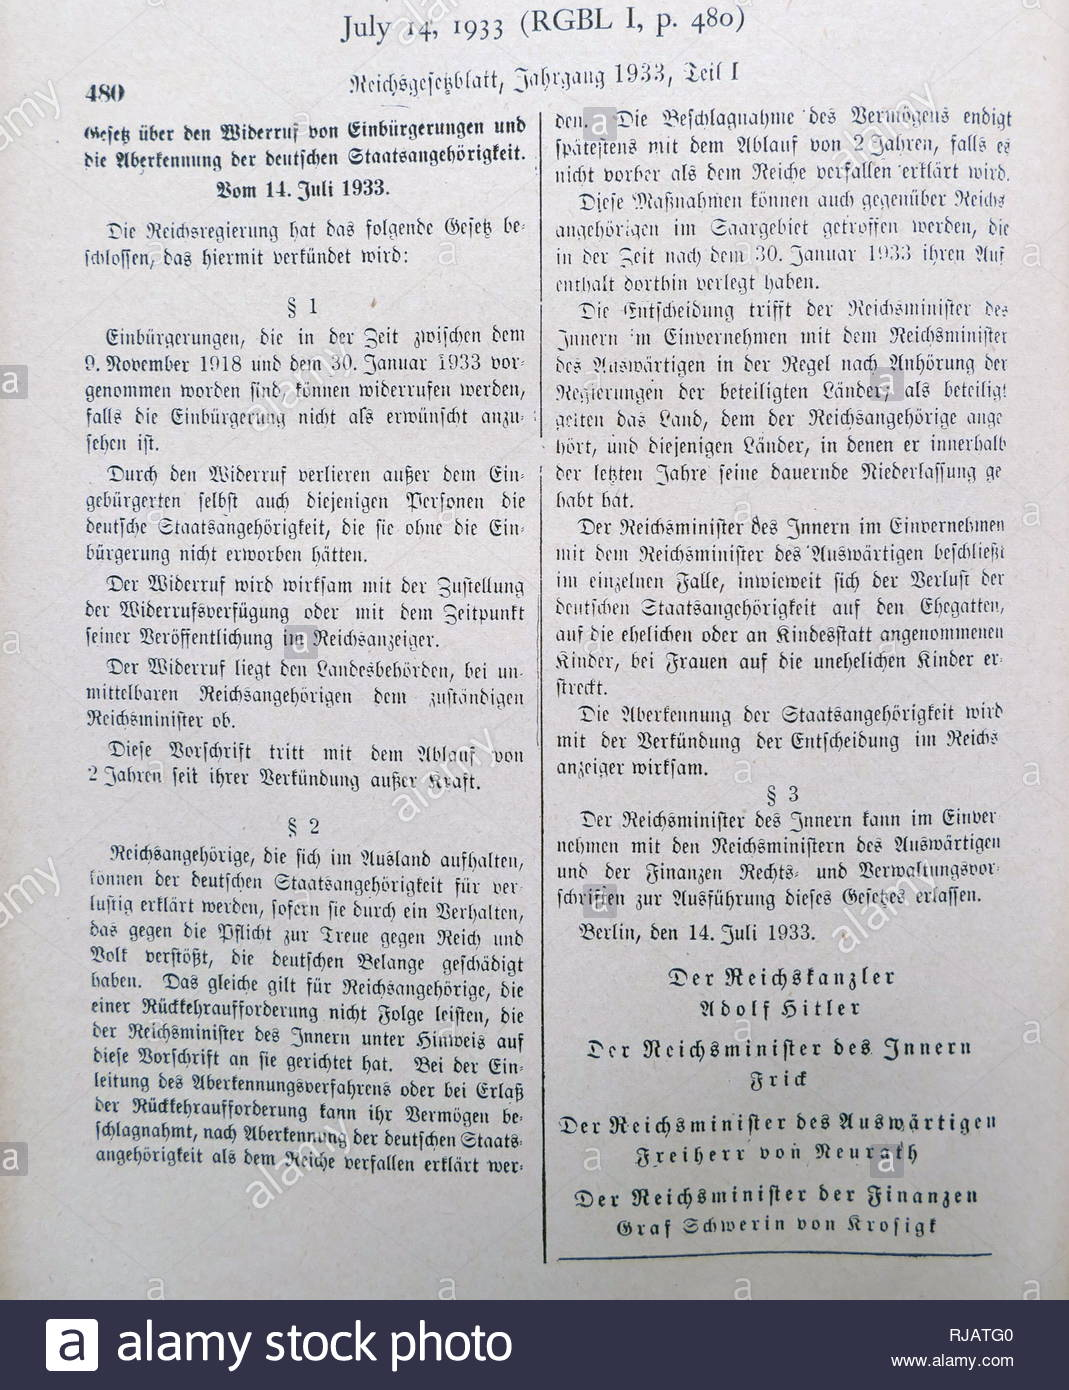 law passed by the Reich government on 14 July 1933 legitimized 'the revocation of naturalizations and the annulment of German citizenship.' The law fulfilled an important promise that had formed part of the Nazi party manifesto as early as 1920. The new law specifically targeted Jews who had immigrated to the German Reich from eastern European countries. In the implementing order, the Reich Ministry of the Interior spelled out the racist and anti-Semitic thrust of the legislation: 'The assessment of whether a naturalization should be regarded as undesirable is made according to völkisch-nation - Stock Image